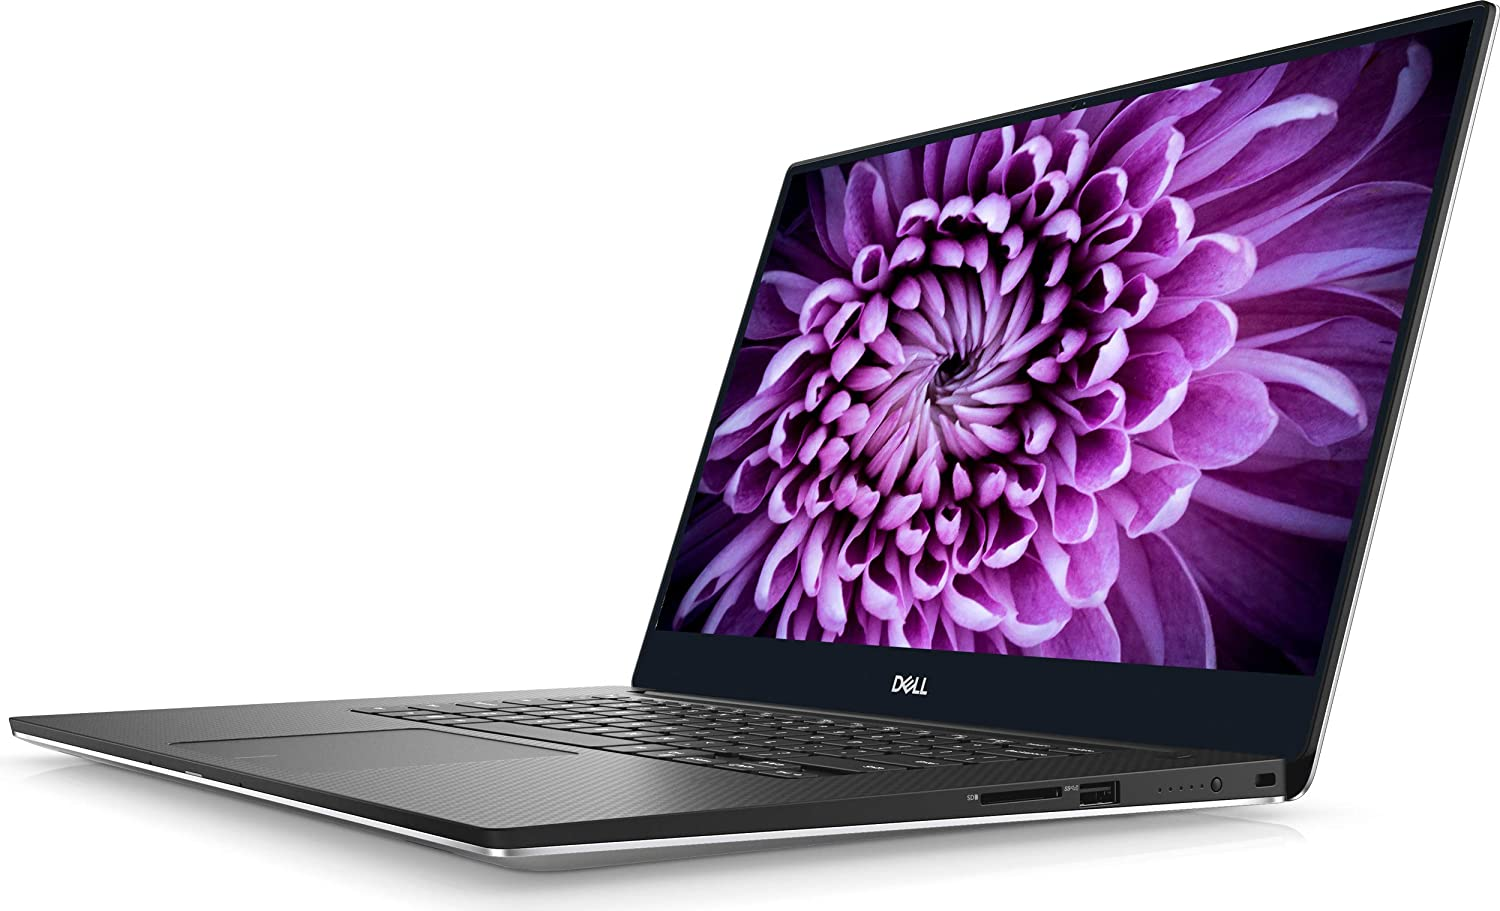 "Dell xps 15 7590 laptop 15.6"" Intel i9-9980HK NVIDIA GTX 1650 1TB SSD 32GB RAM 4K uhd touch ( 3840 x 2160) windows 10 pro"